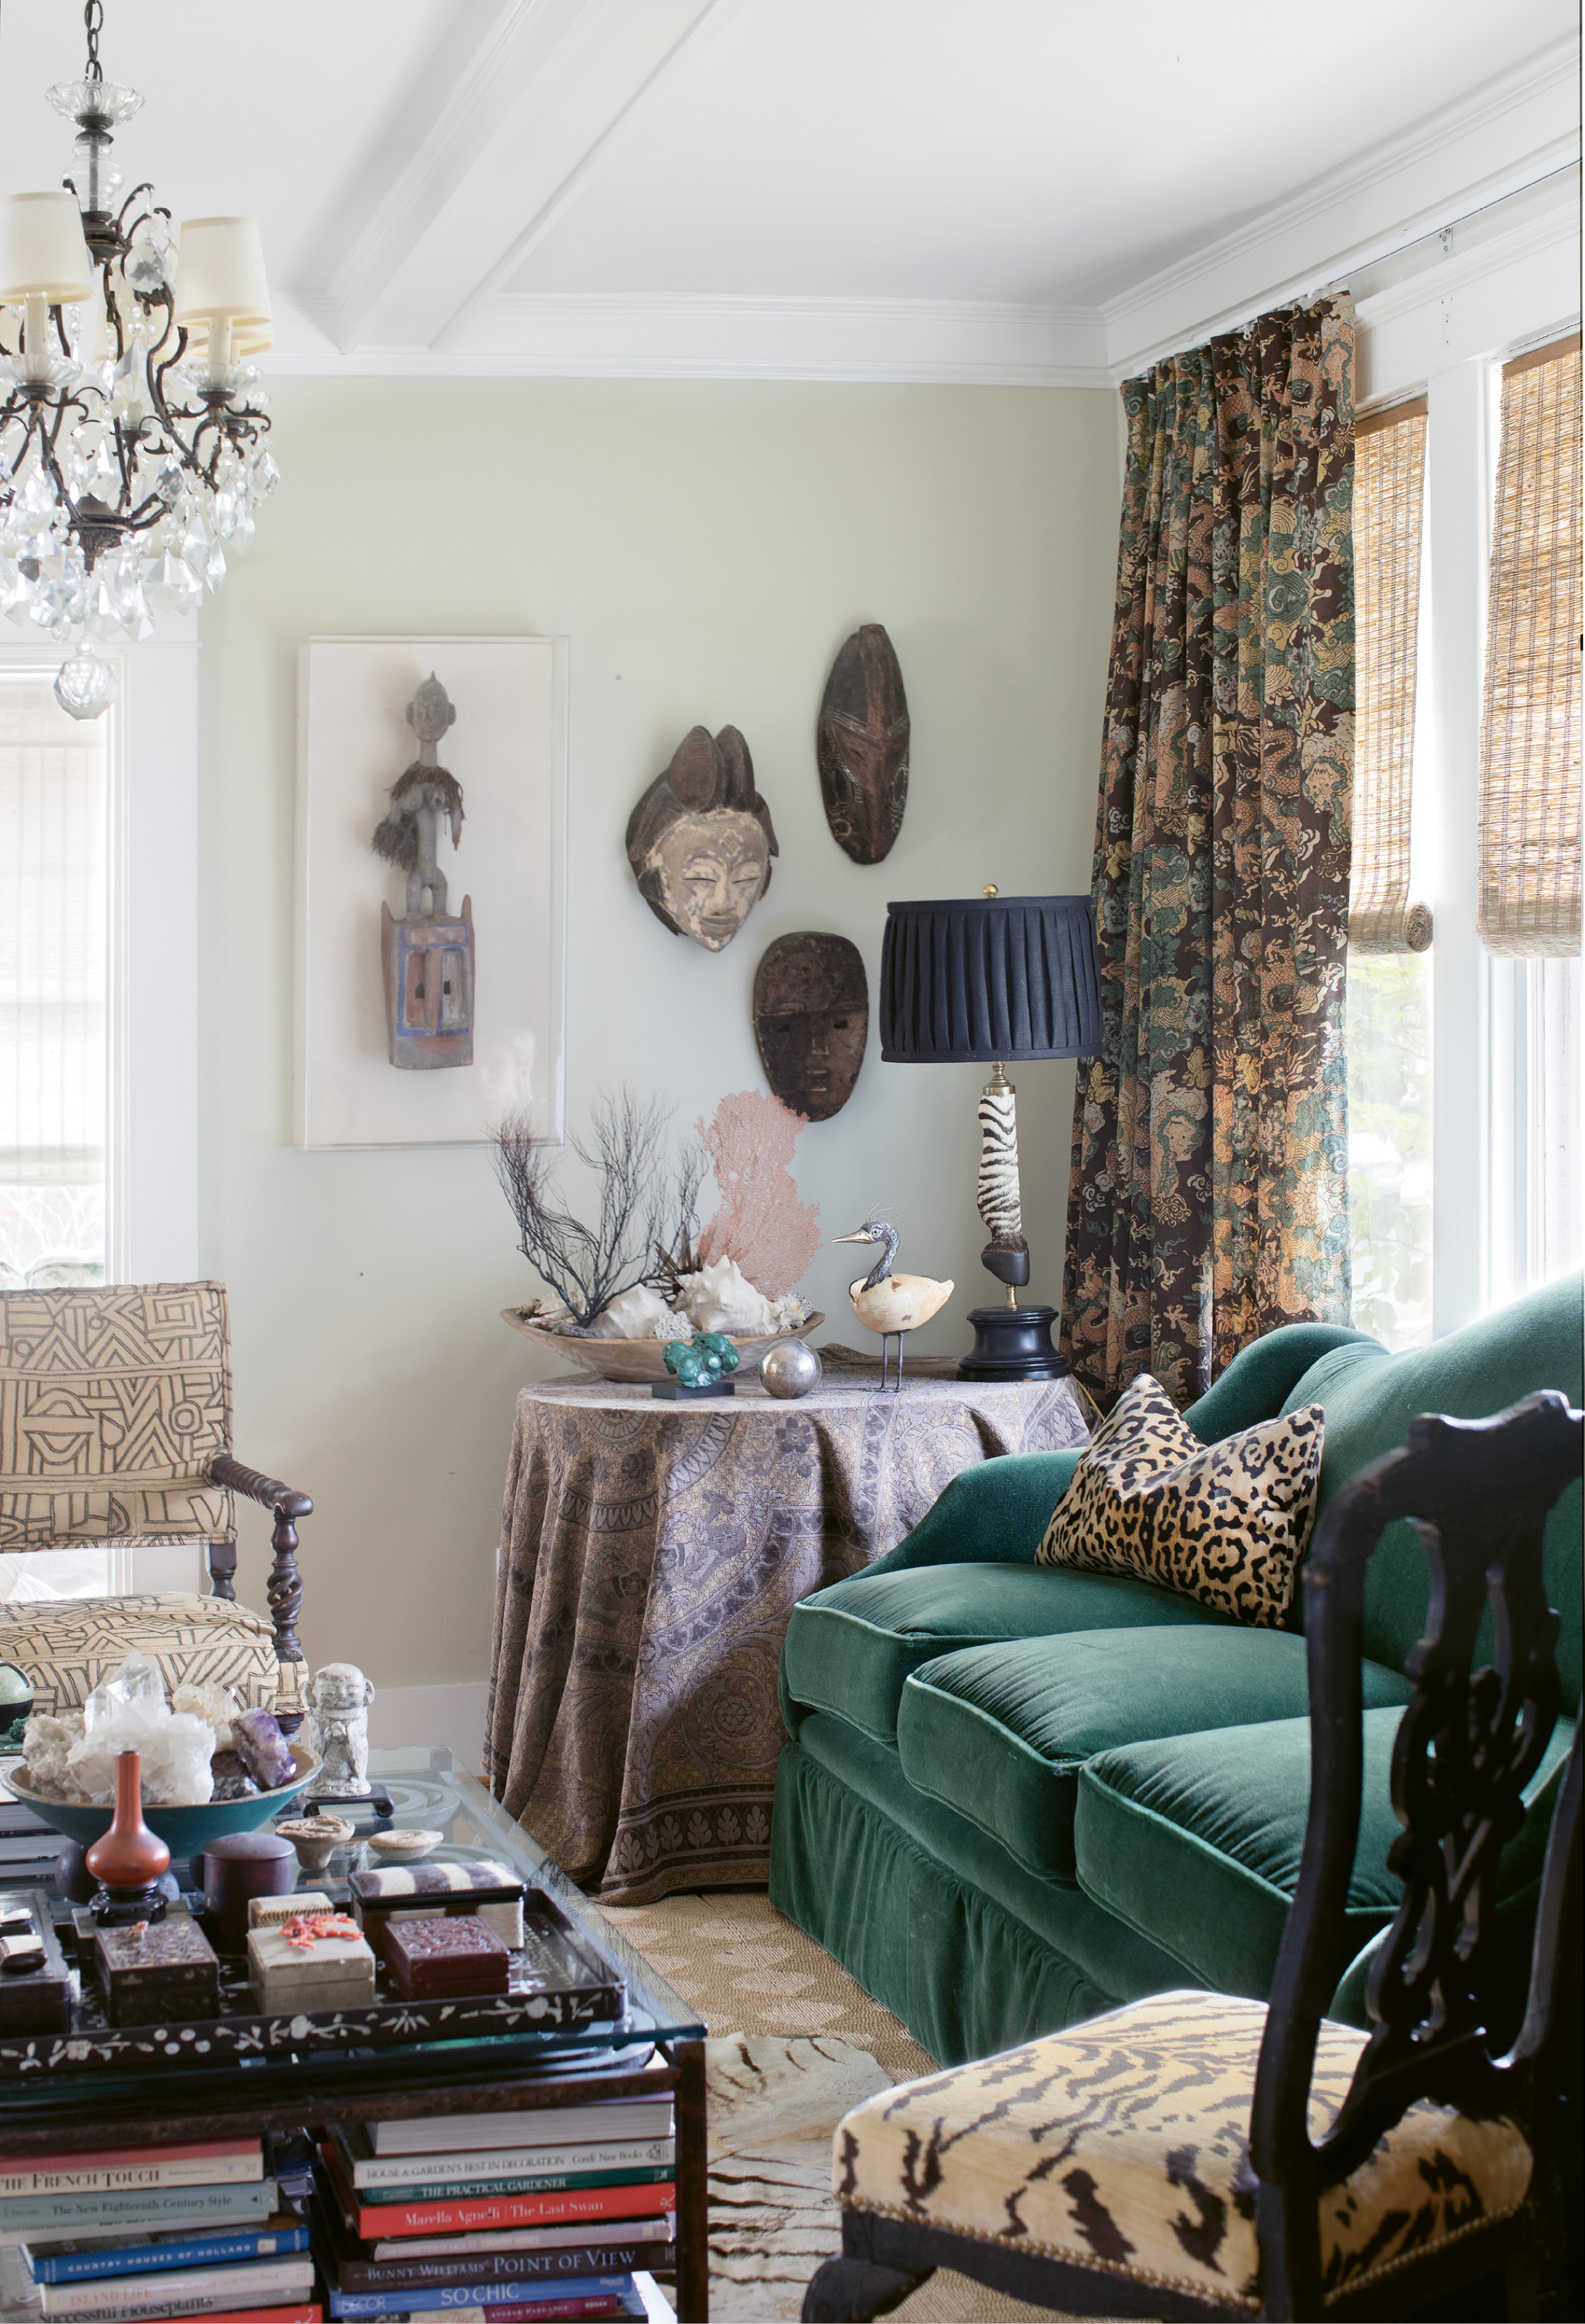 """Traditional furnishings, such as 18th-century Swedish rococo chairs upholstered in Scalamandre's """"Le Tigre"""" silk velvet and a 19th-century Jacobean armchair with antique African Kuba cloth, mingle with African masks and floral-style arrangements of sea coral."""